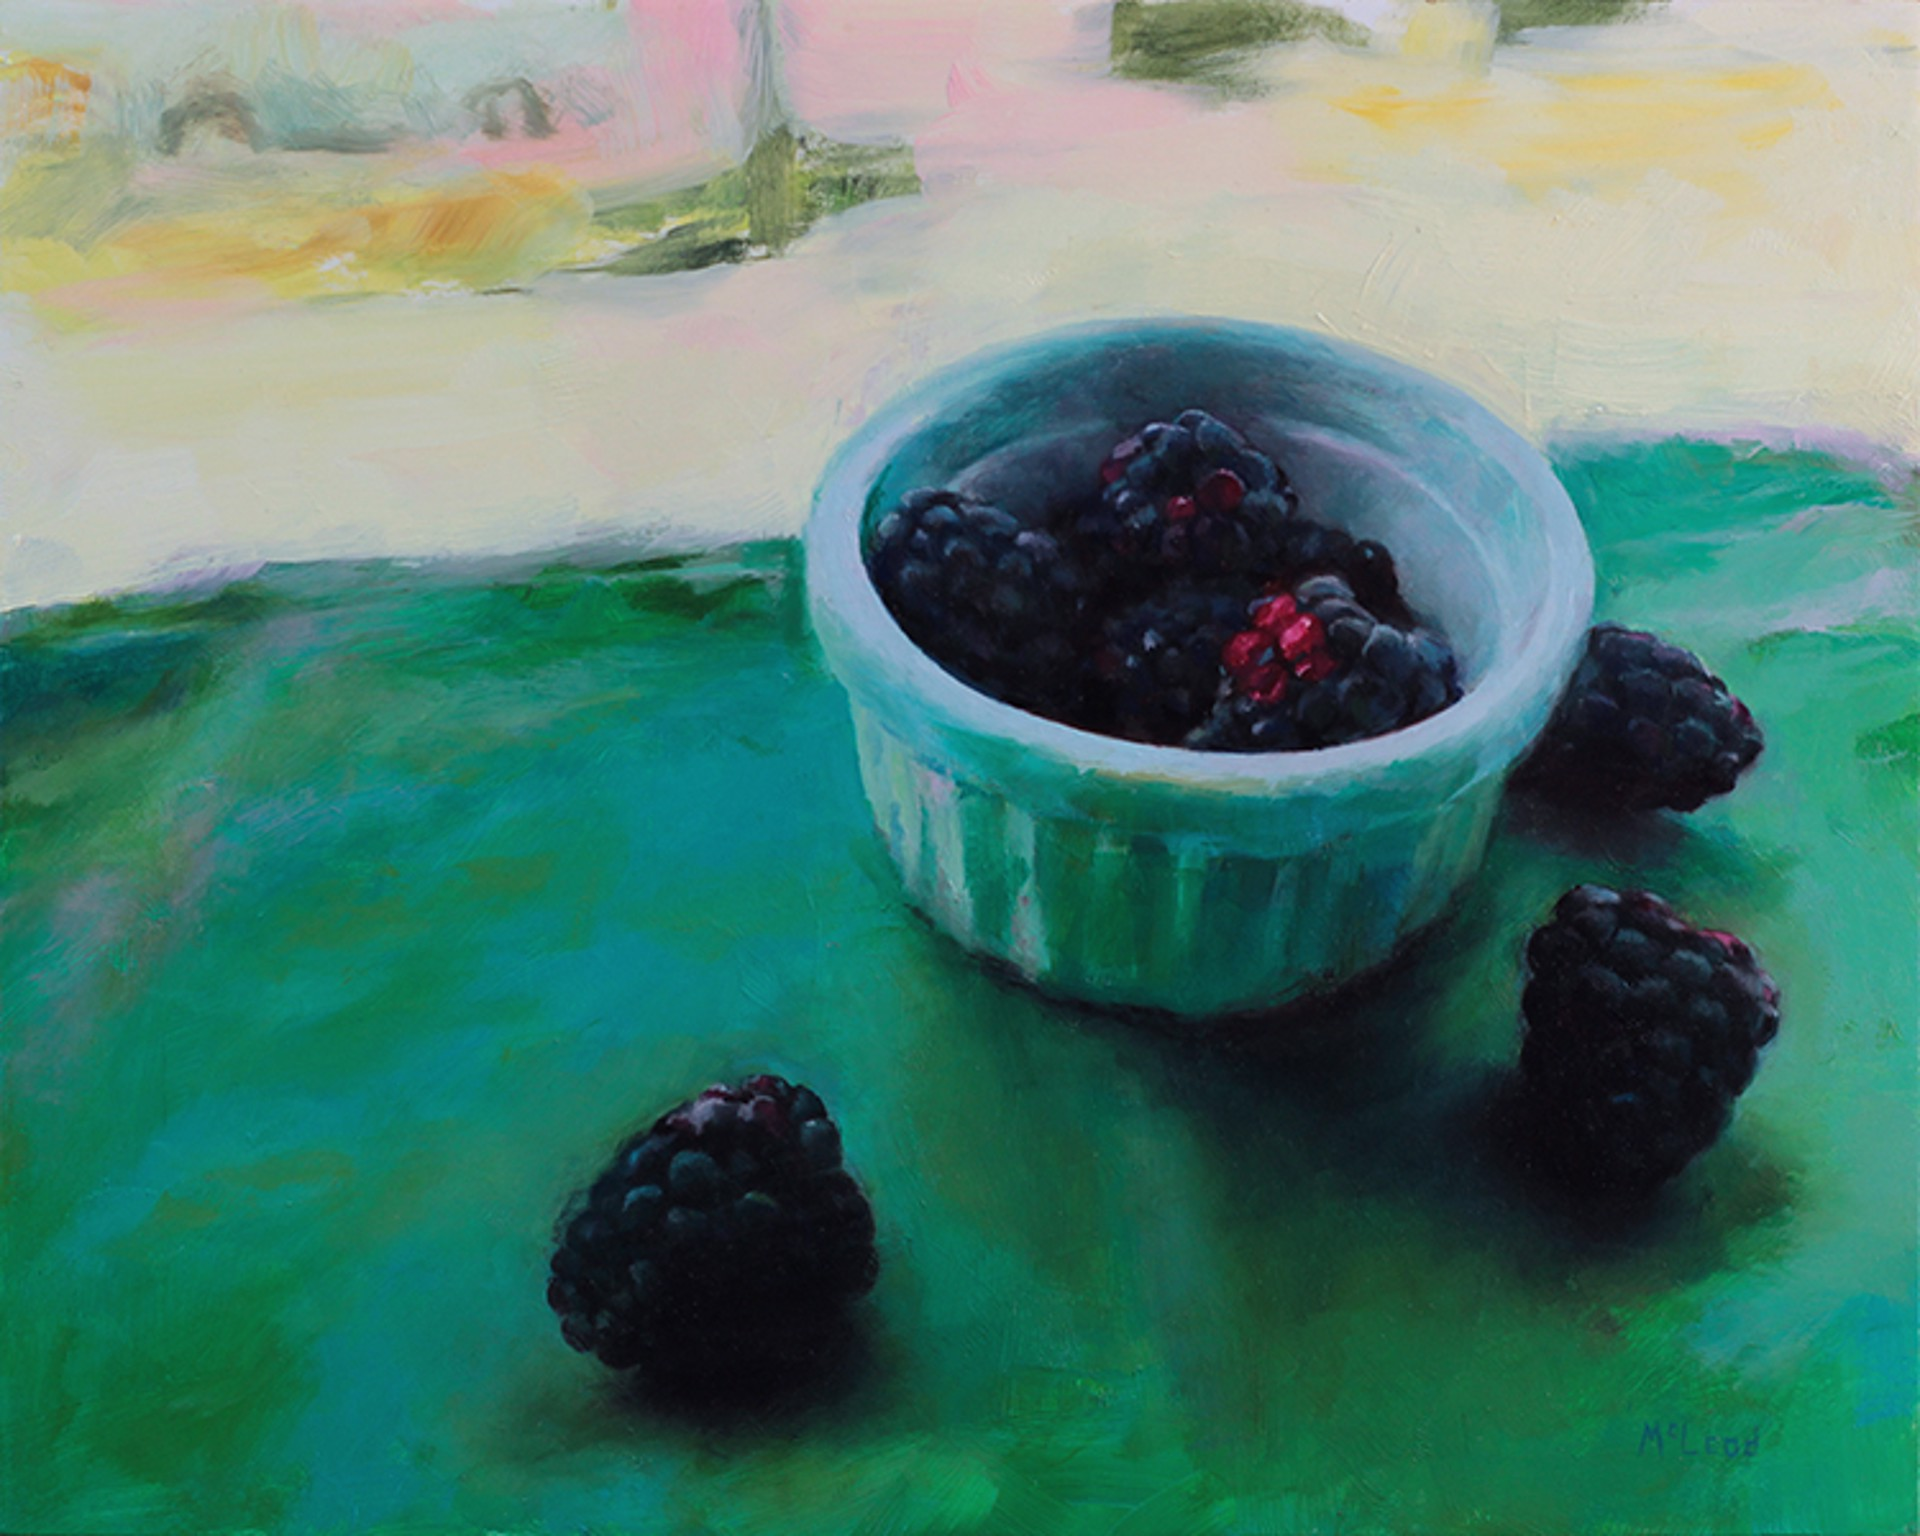 Blackberries by John McLeod